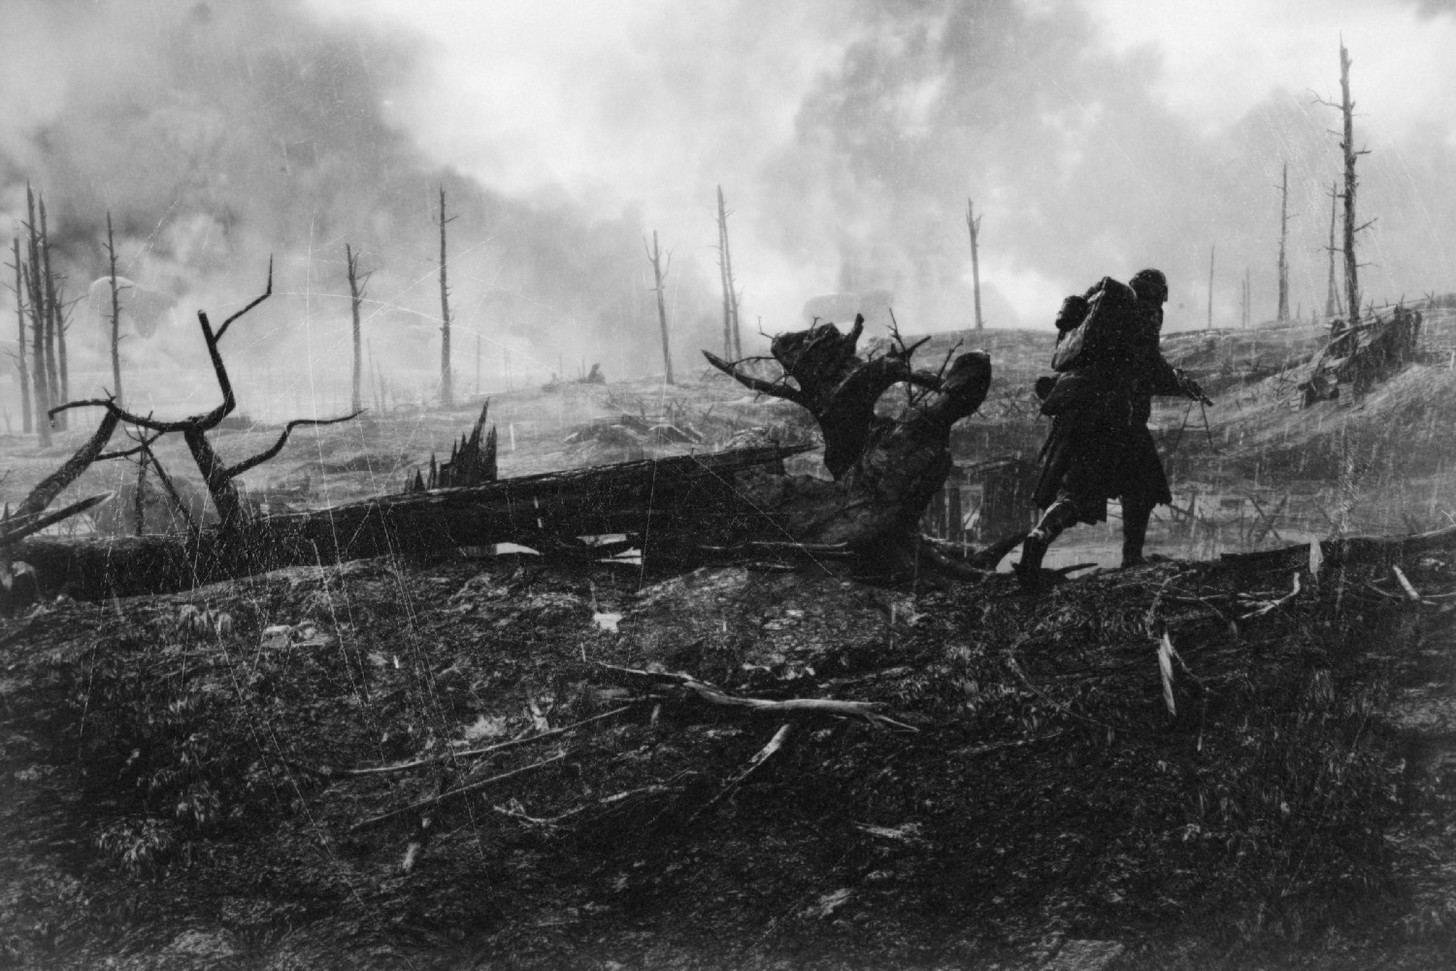 Battlefield 1 Screens Look Hauntingly Realistic With Black & White Filter BNNTB4ar